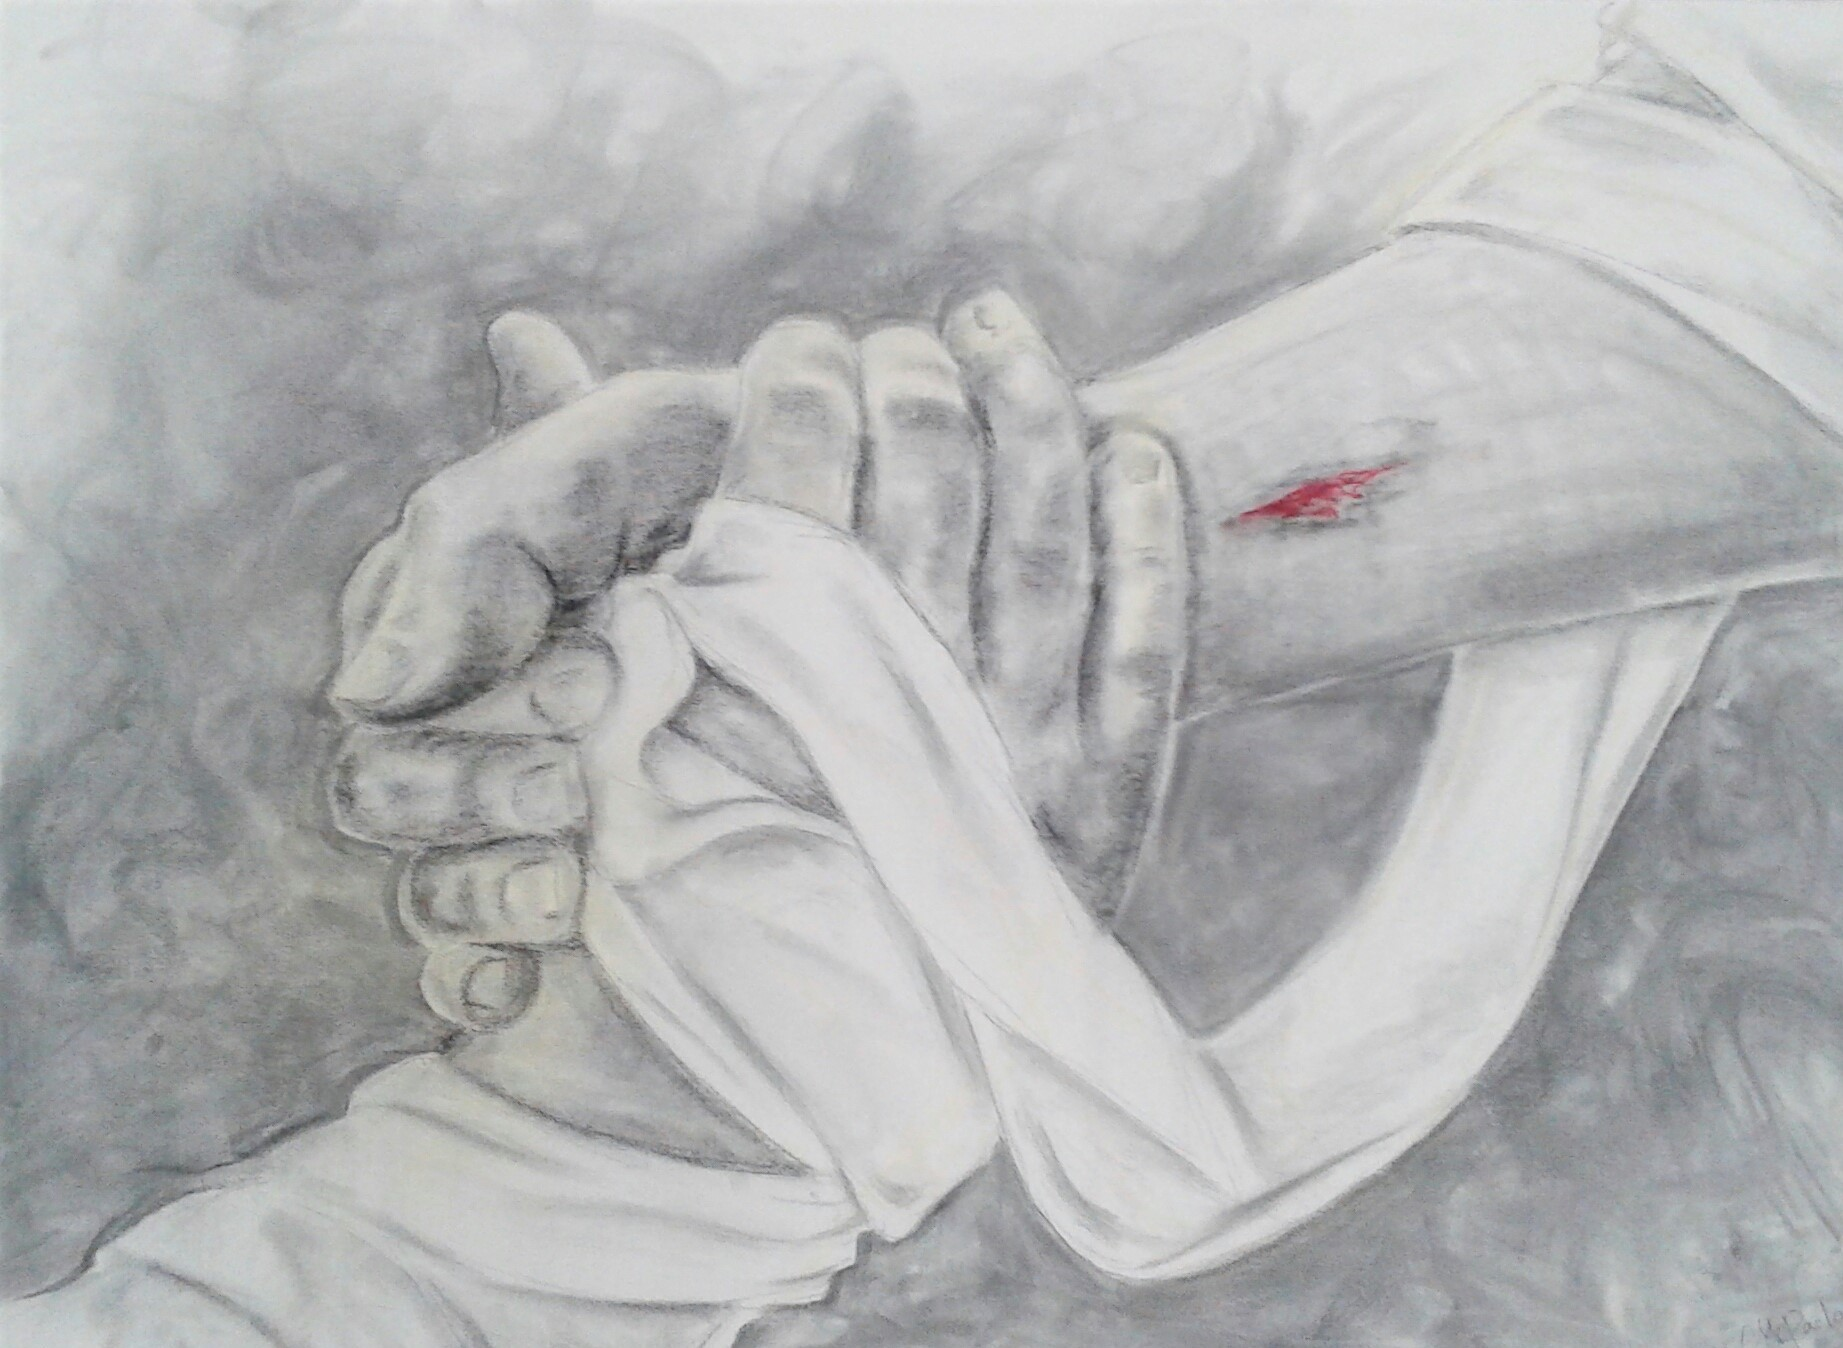 charcoal drawing of Jesus grasping the hand of Lazarus when he raised him from death